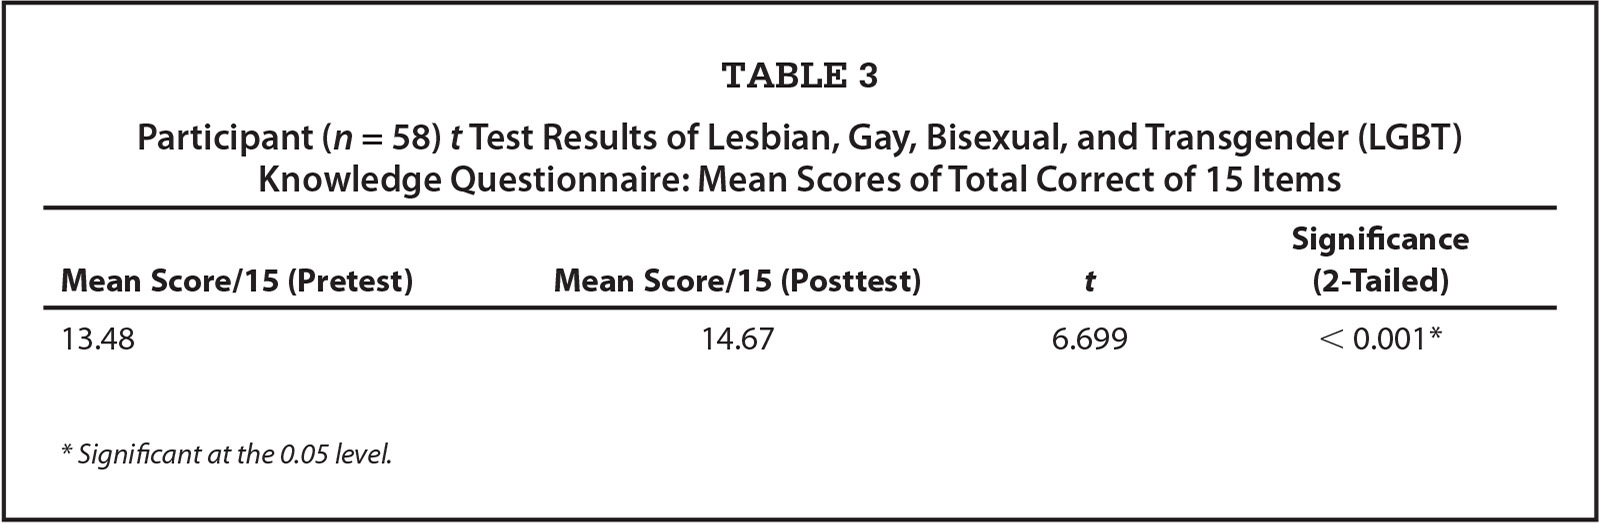 Participant (n = 58) t Test Results of Lesbian, Gay, Bisexual, and Transgender (LGBT) Knowledge Questionnaire: Mean Scores of Total Correct of 15 Items